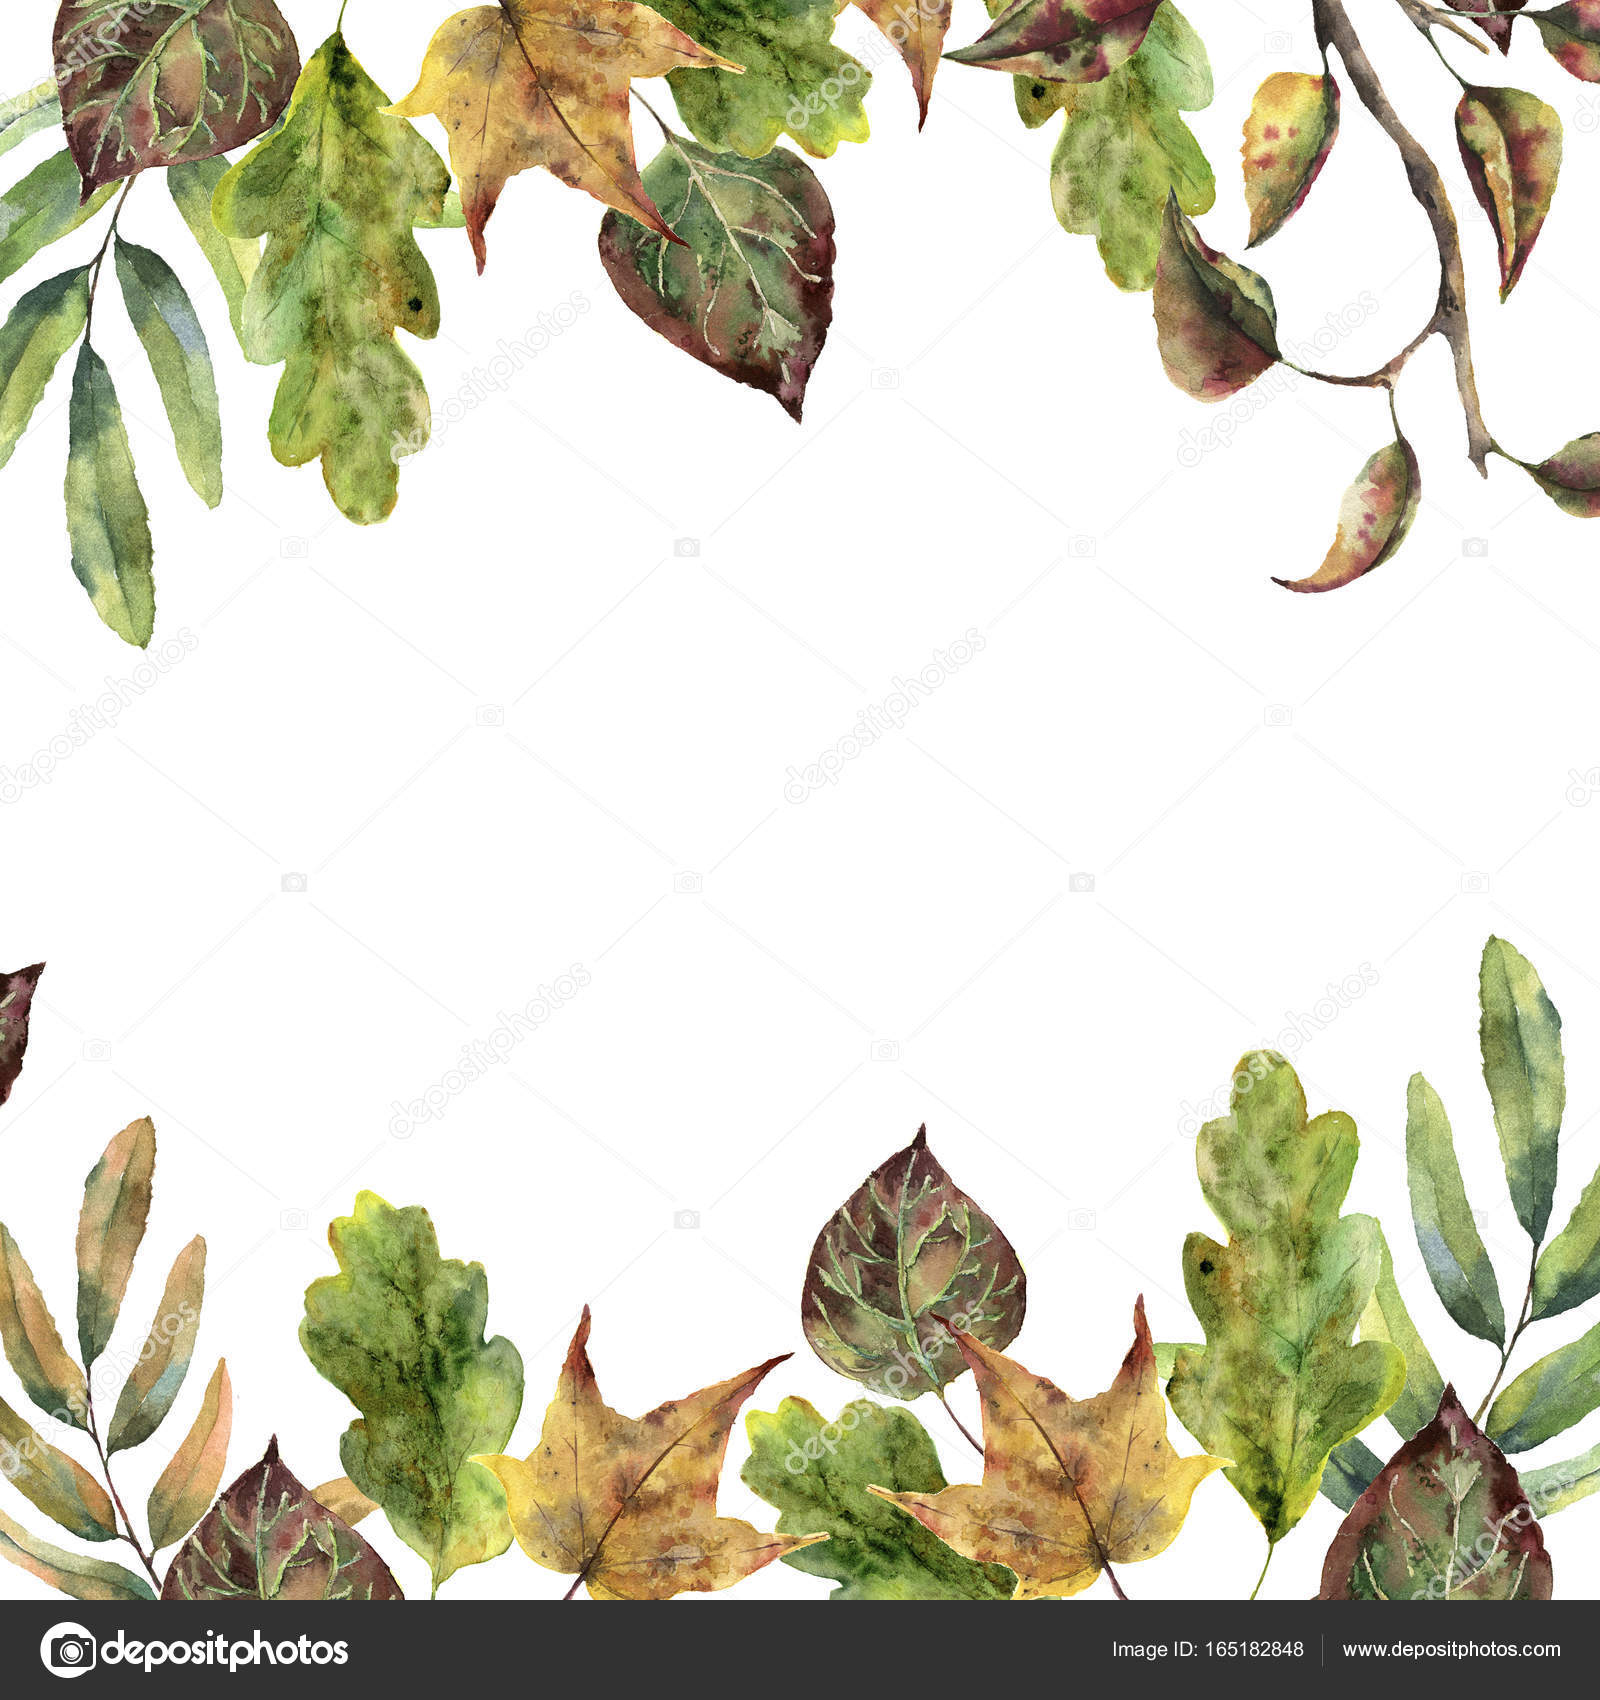 Watercolor Autumn Frame With Fall Leaves Hand Painted And Tree Branch Isolated On White Background Seasonal Border For Design Photo By Derbisheva